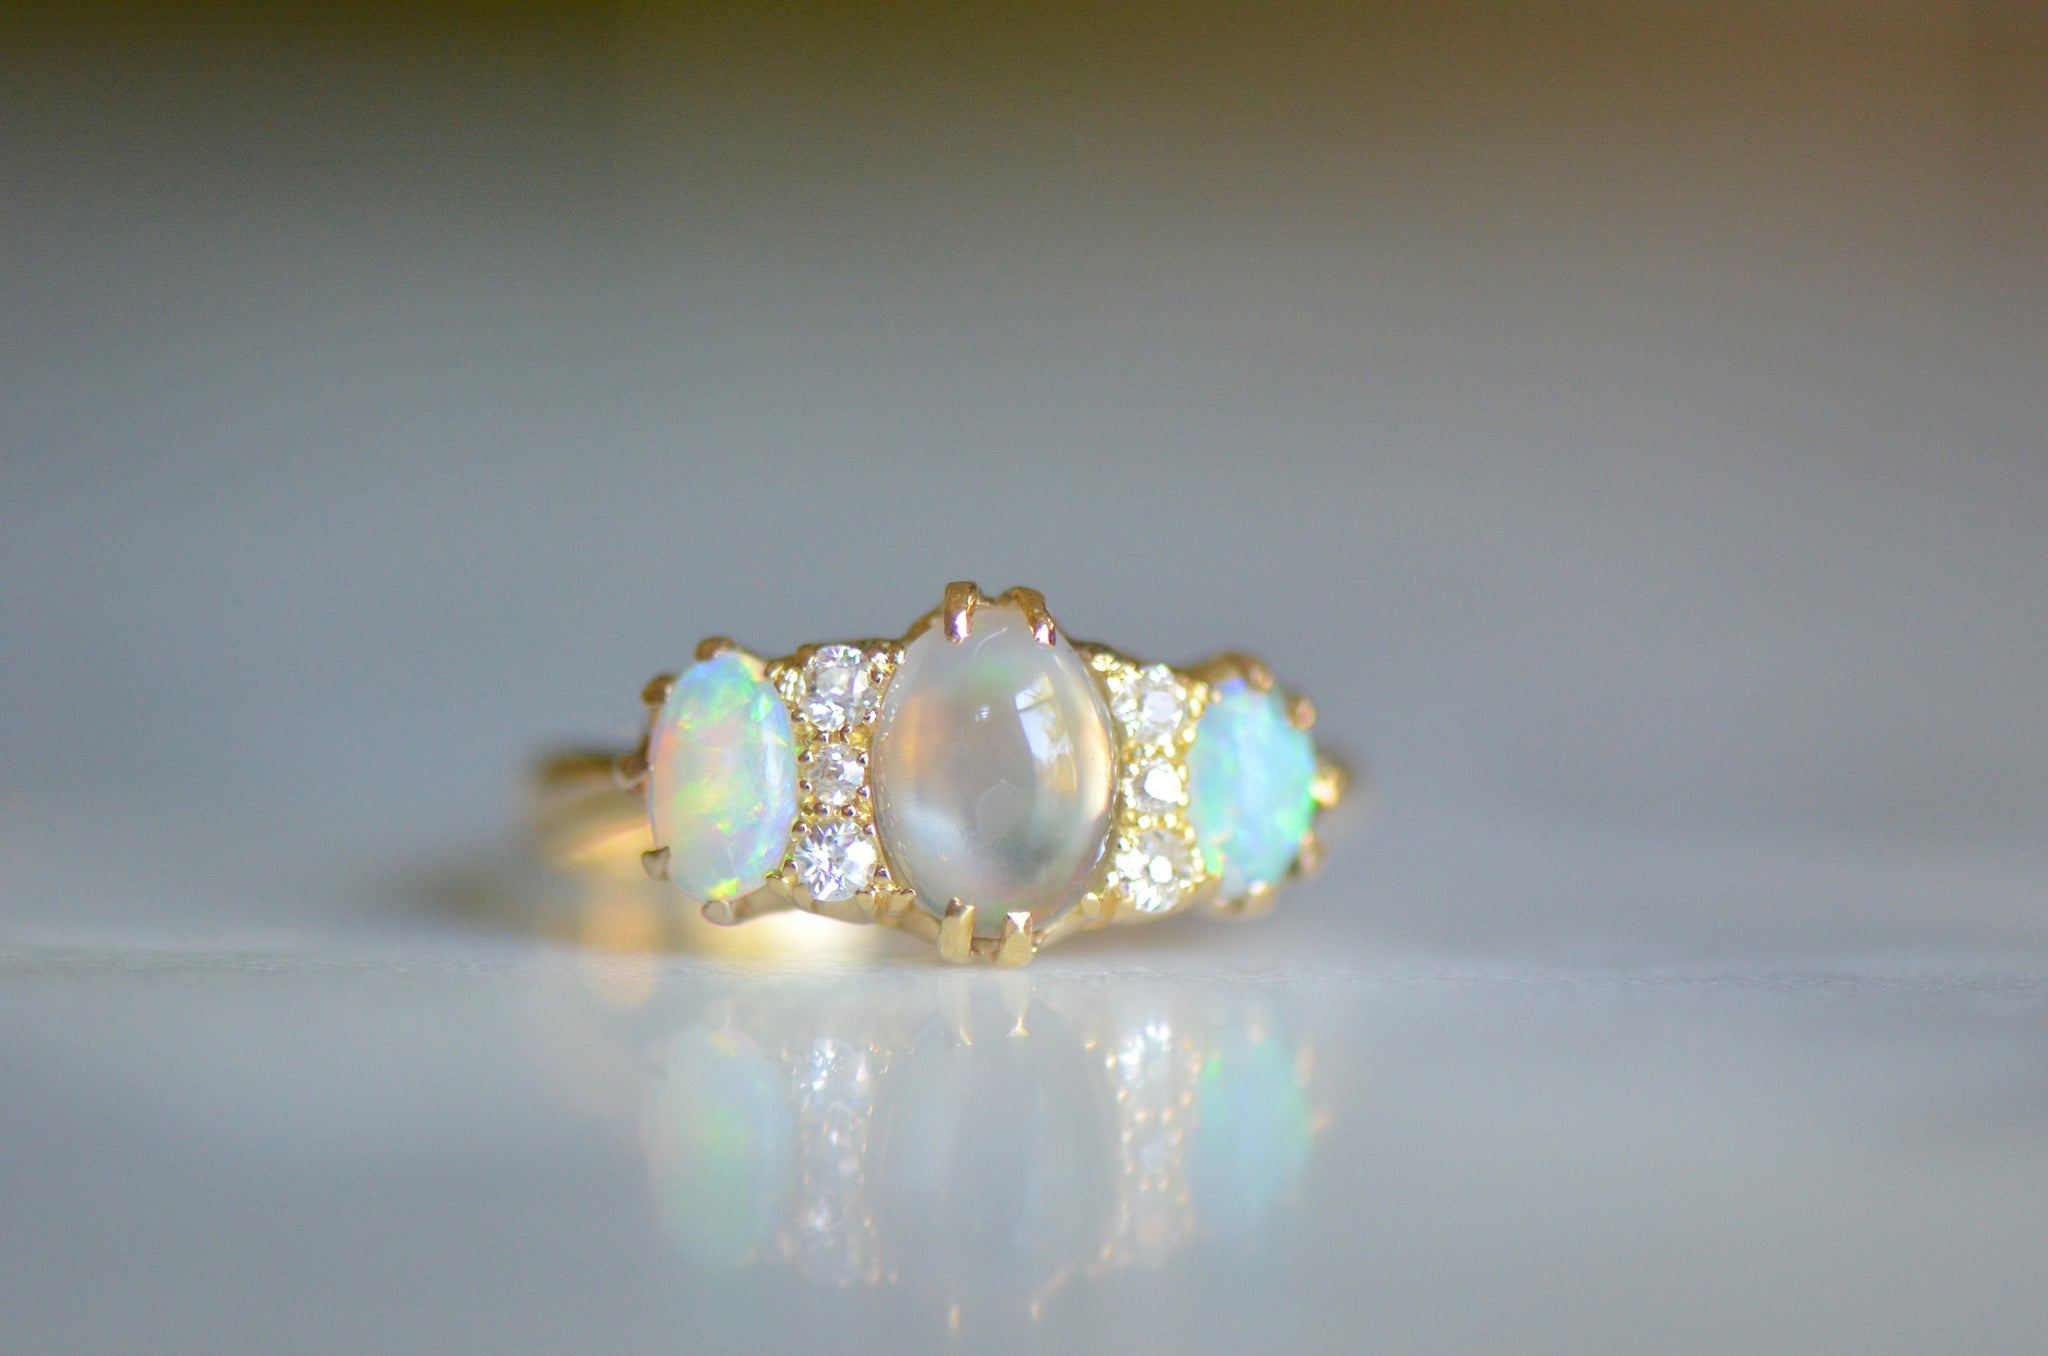 Ethereal Victorian-Style Opal Diamond Ring